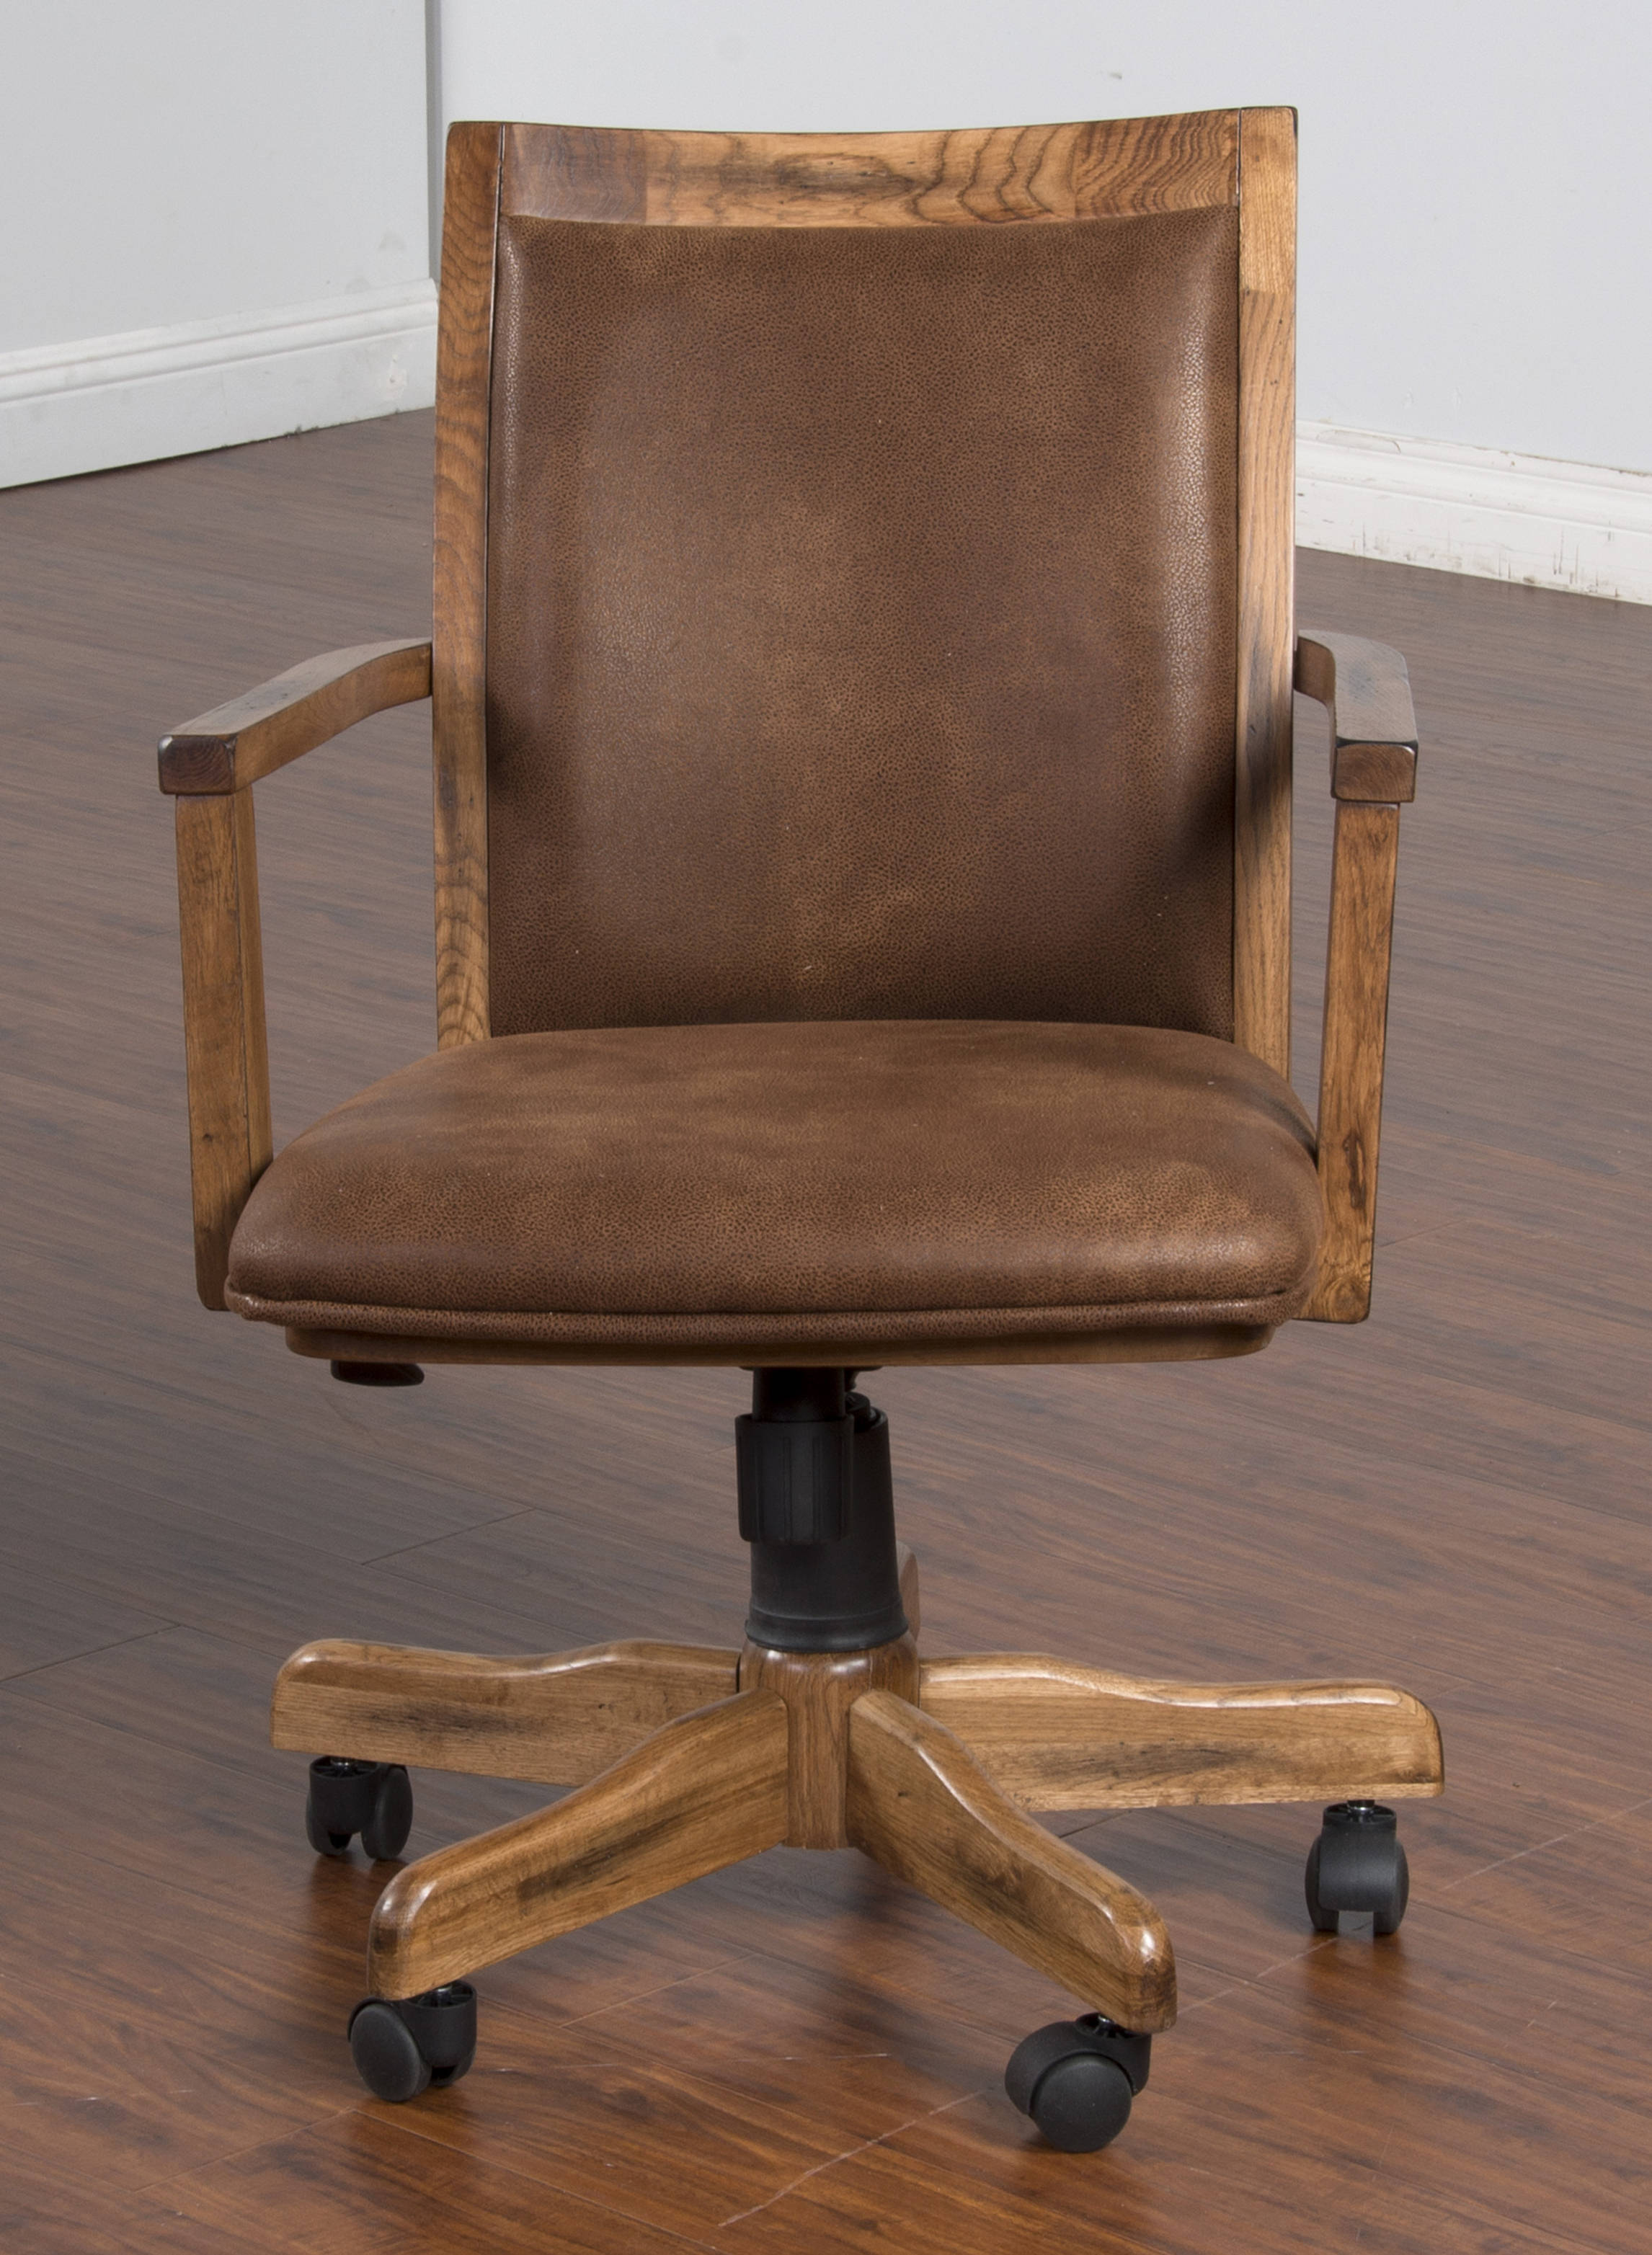 Delicieux Sunny Designs Sedona Rustic Oak Office Chair Click To Enlarge ...